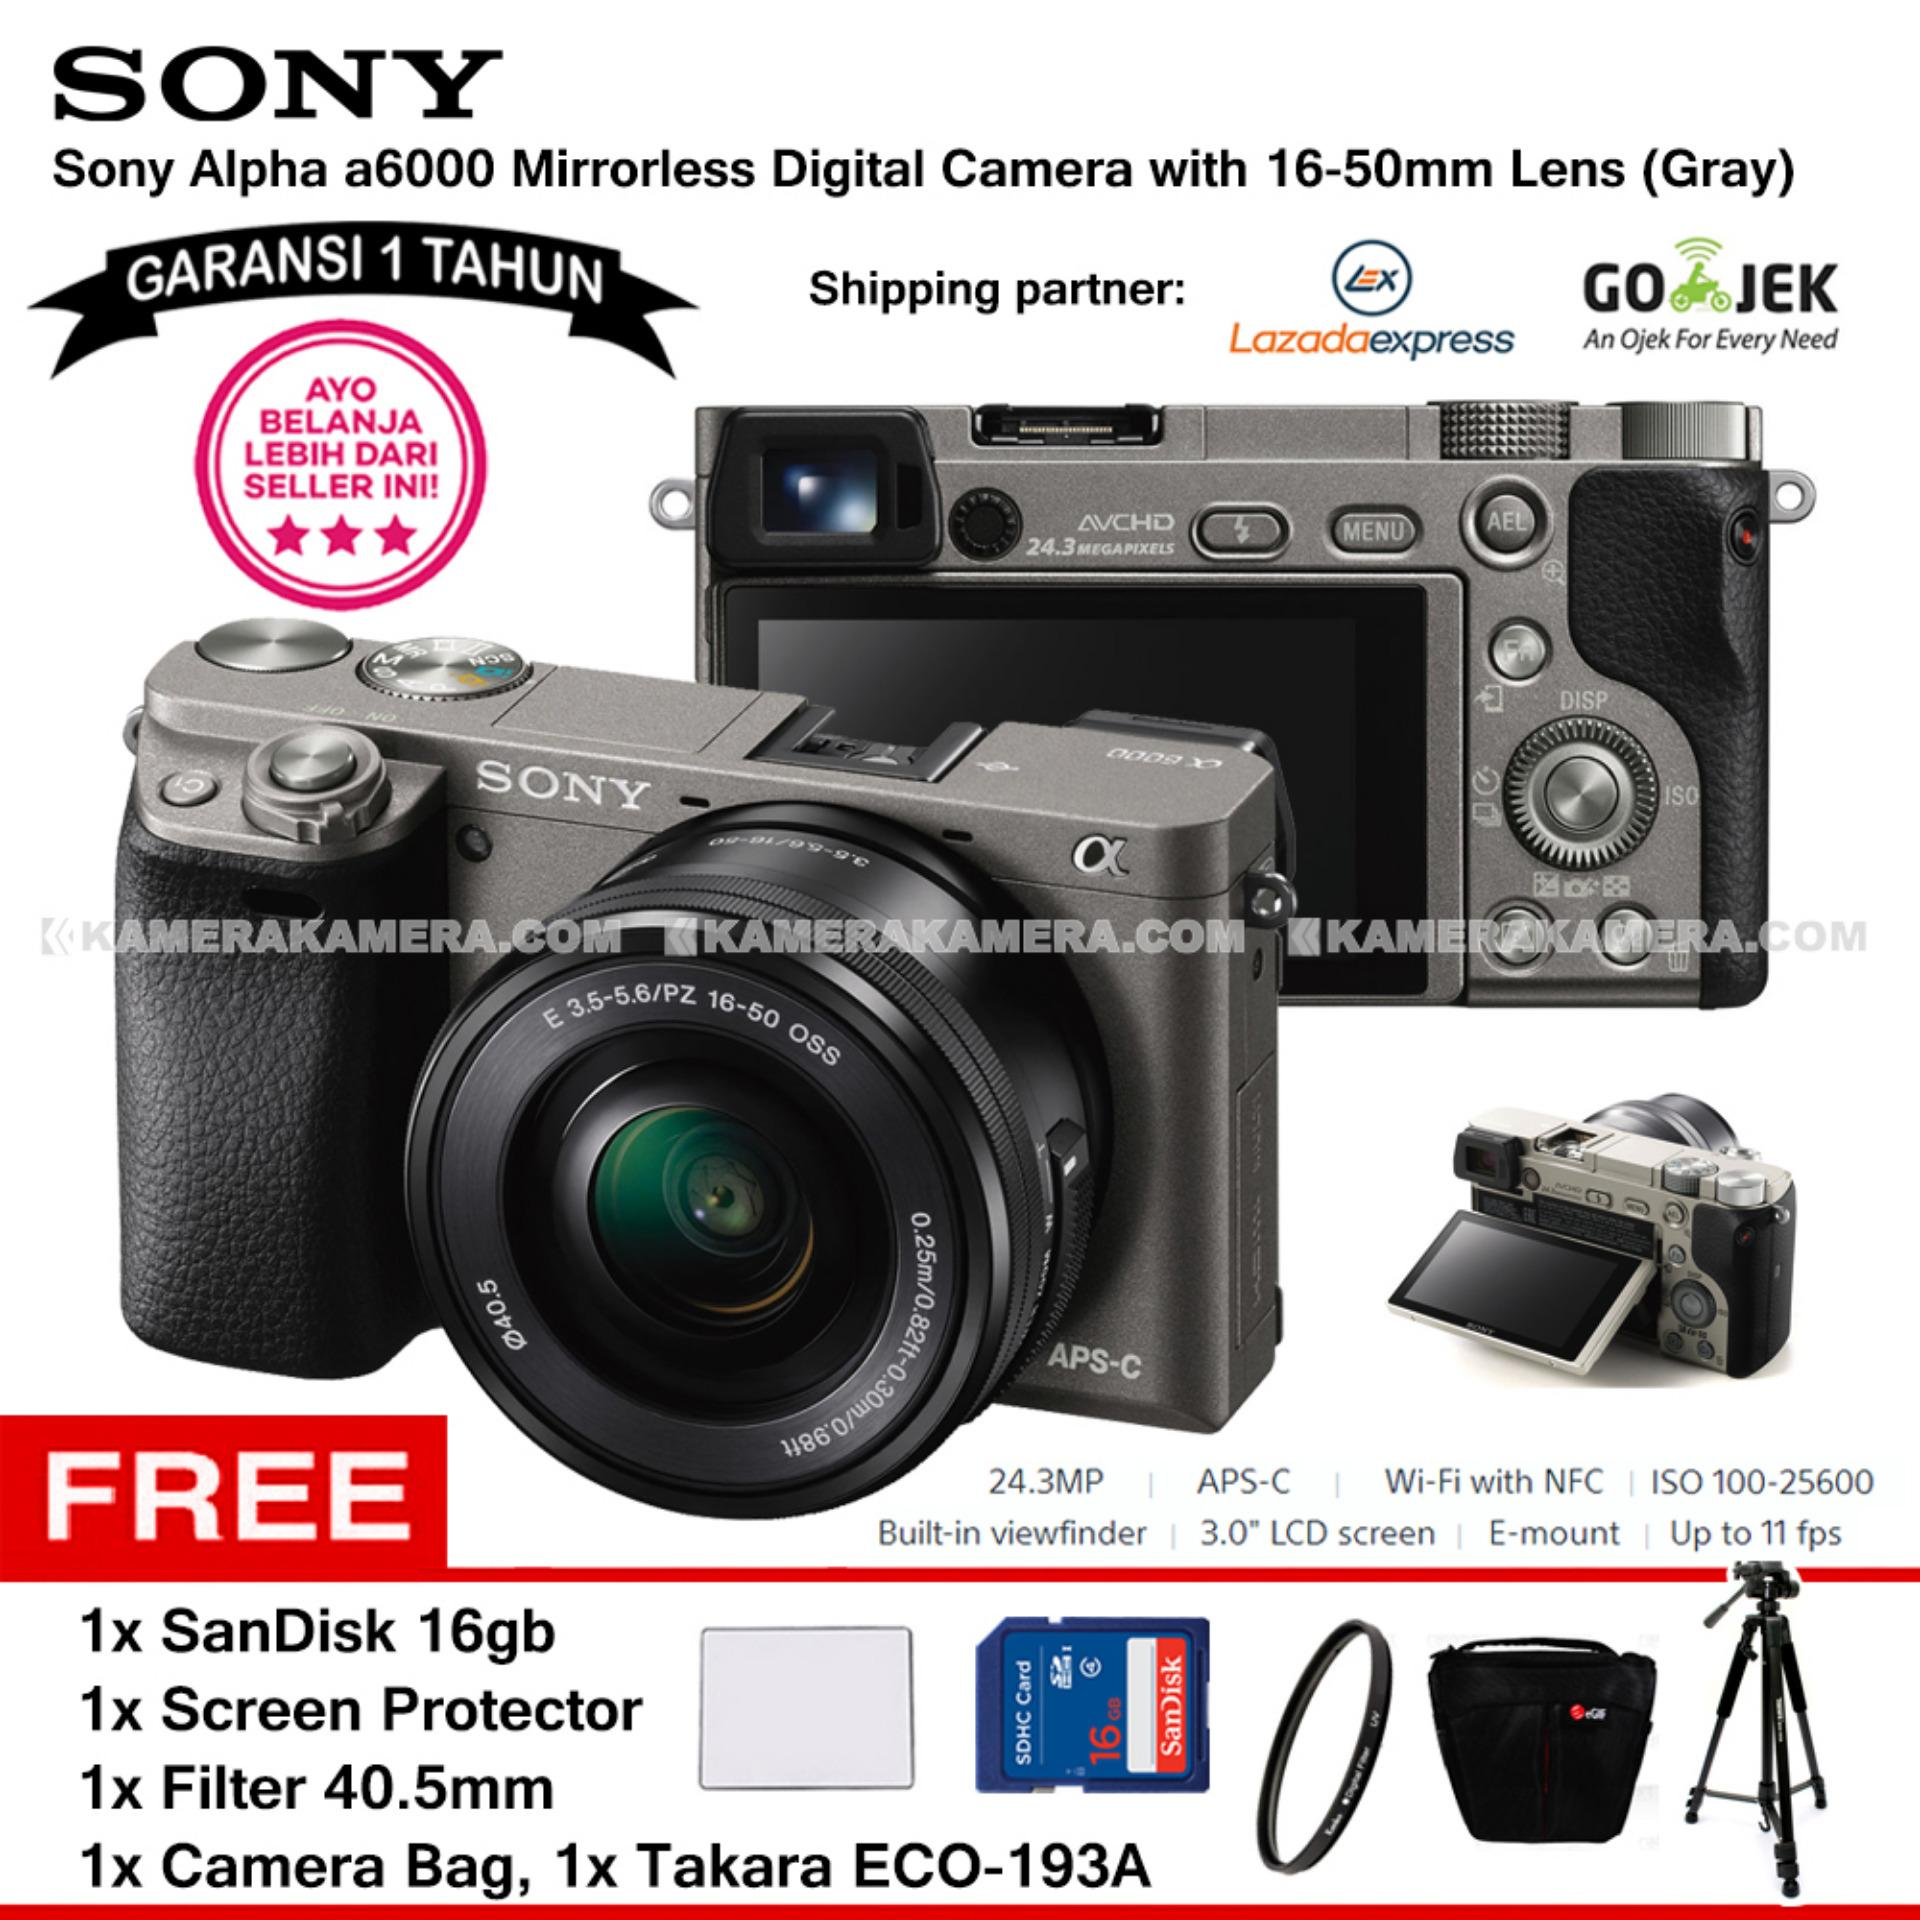 SONY Alpha 6000 Gray with 16-50mm Lens Mirrorless Camera a6000 - WiFi 24.3MP Full HD (Garansi 1th) + SanDisk 16gb + Screen Guard + Filter 40.5mm + Camera Bag + Takara ECO-193A